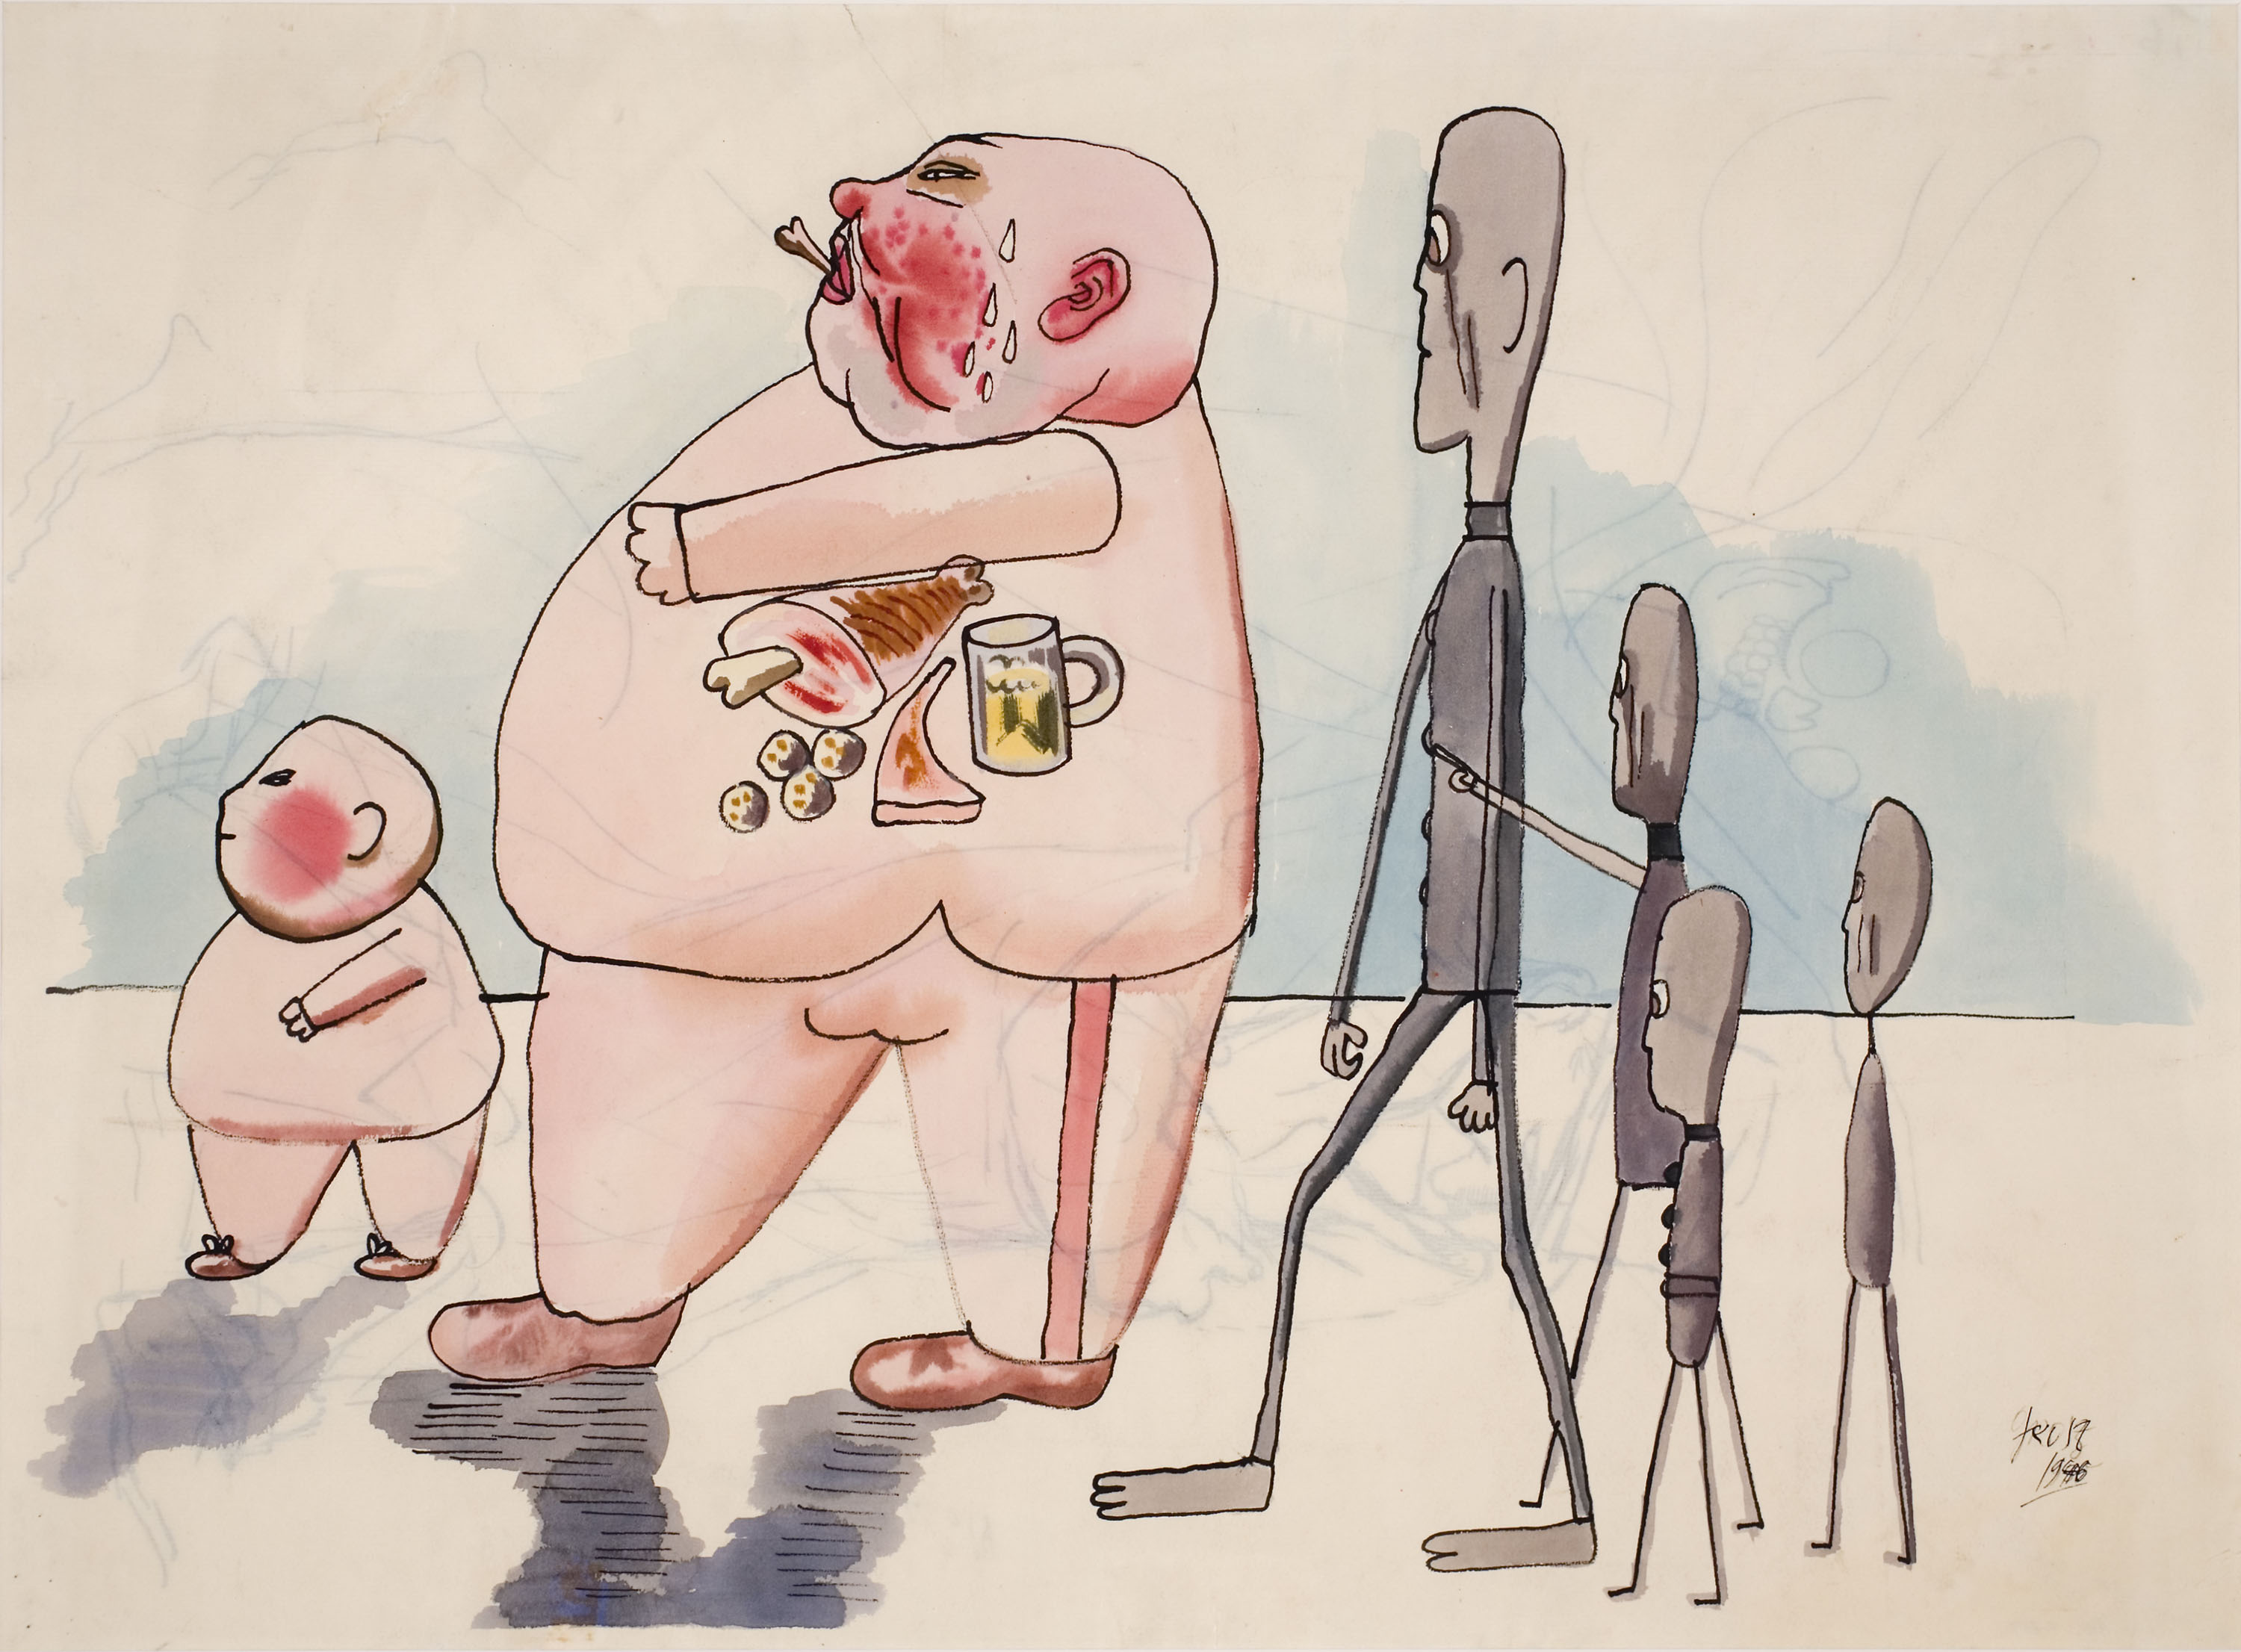 Keep Your Timber Limber, George Grosz, Stickmen meeting members of the bourgeois, 1946